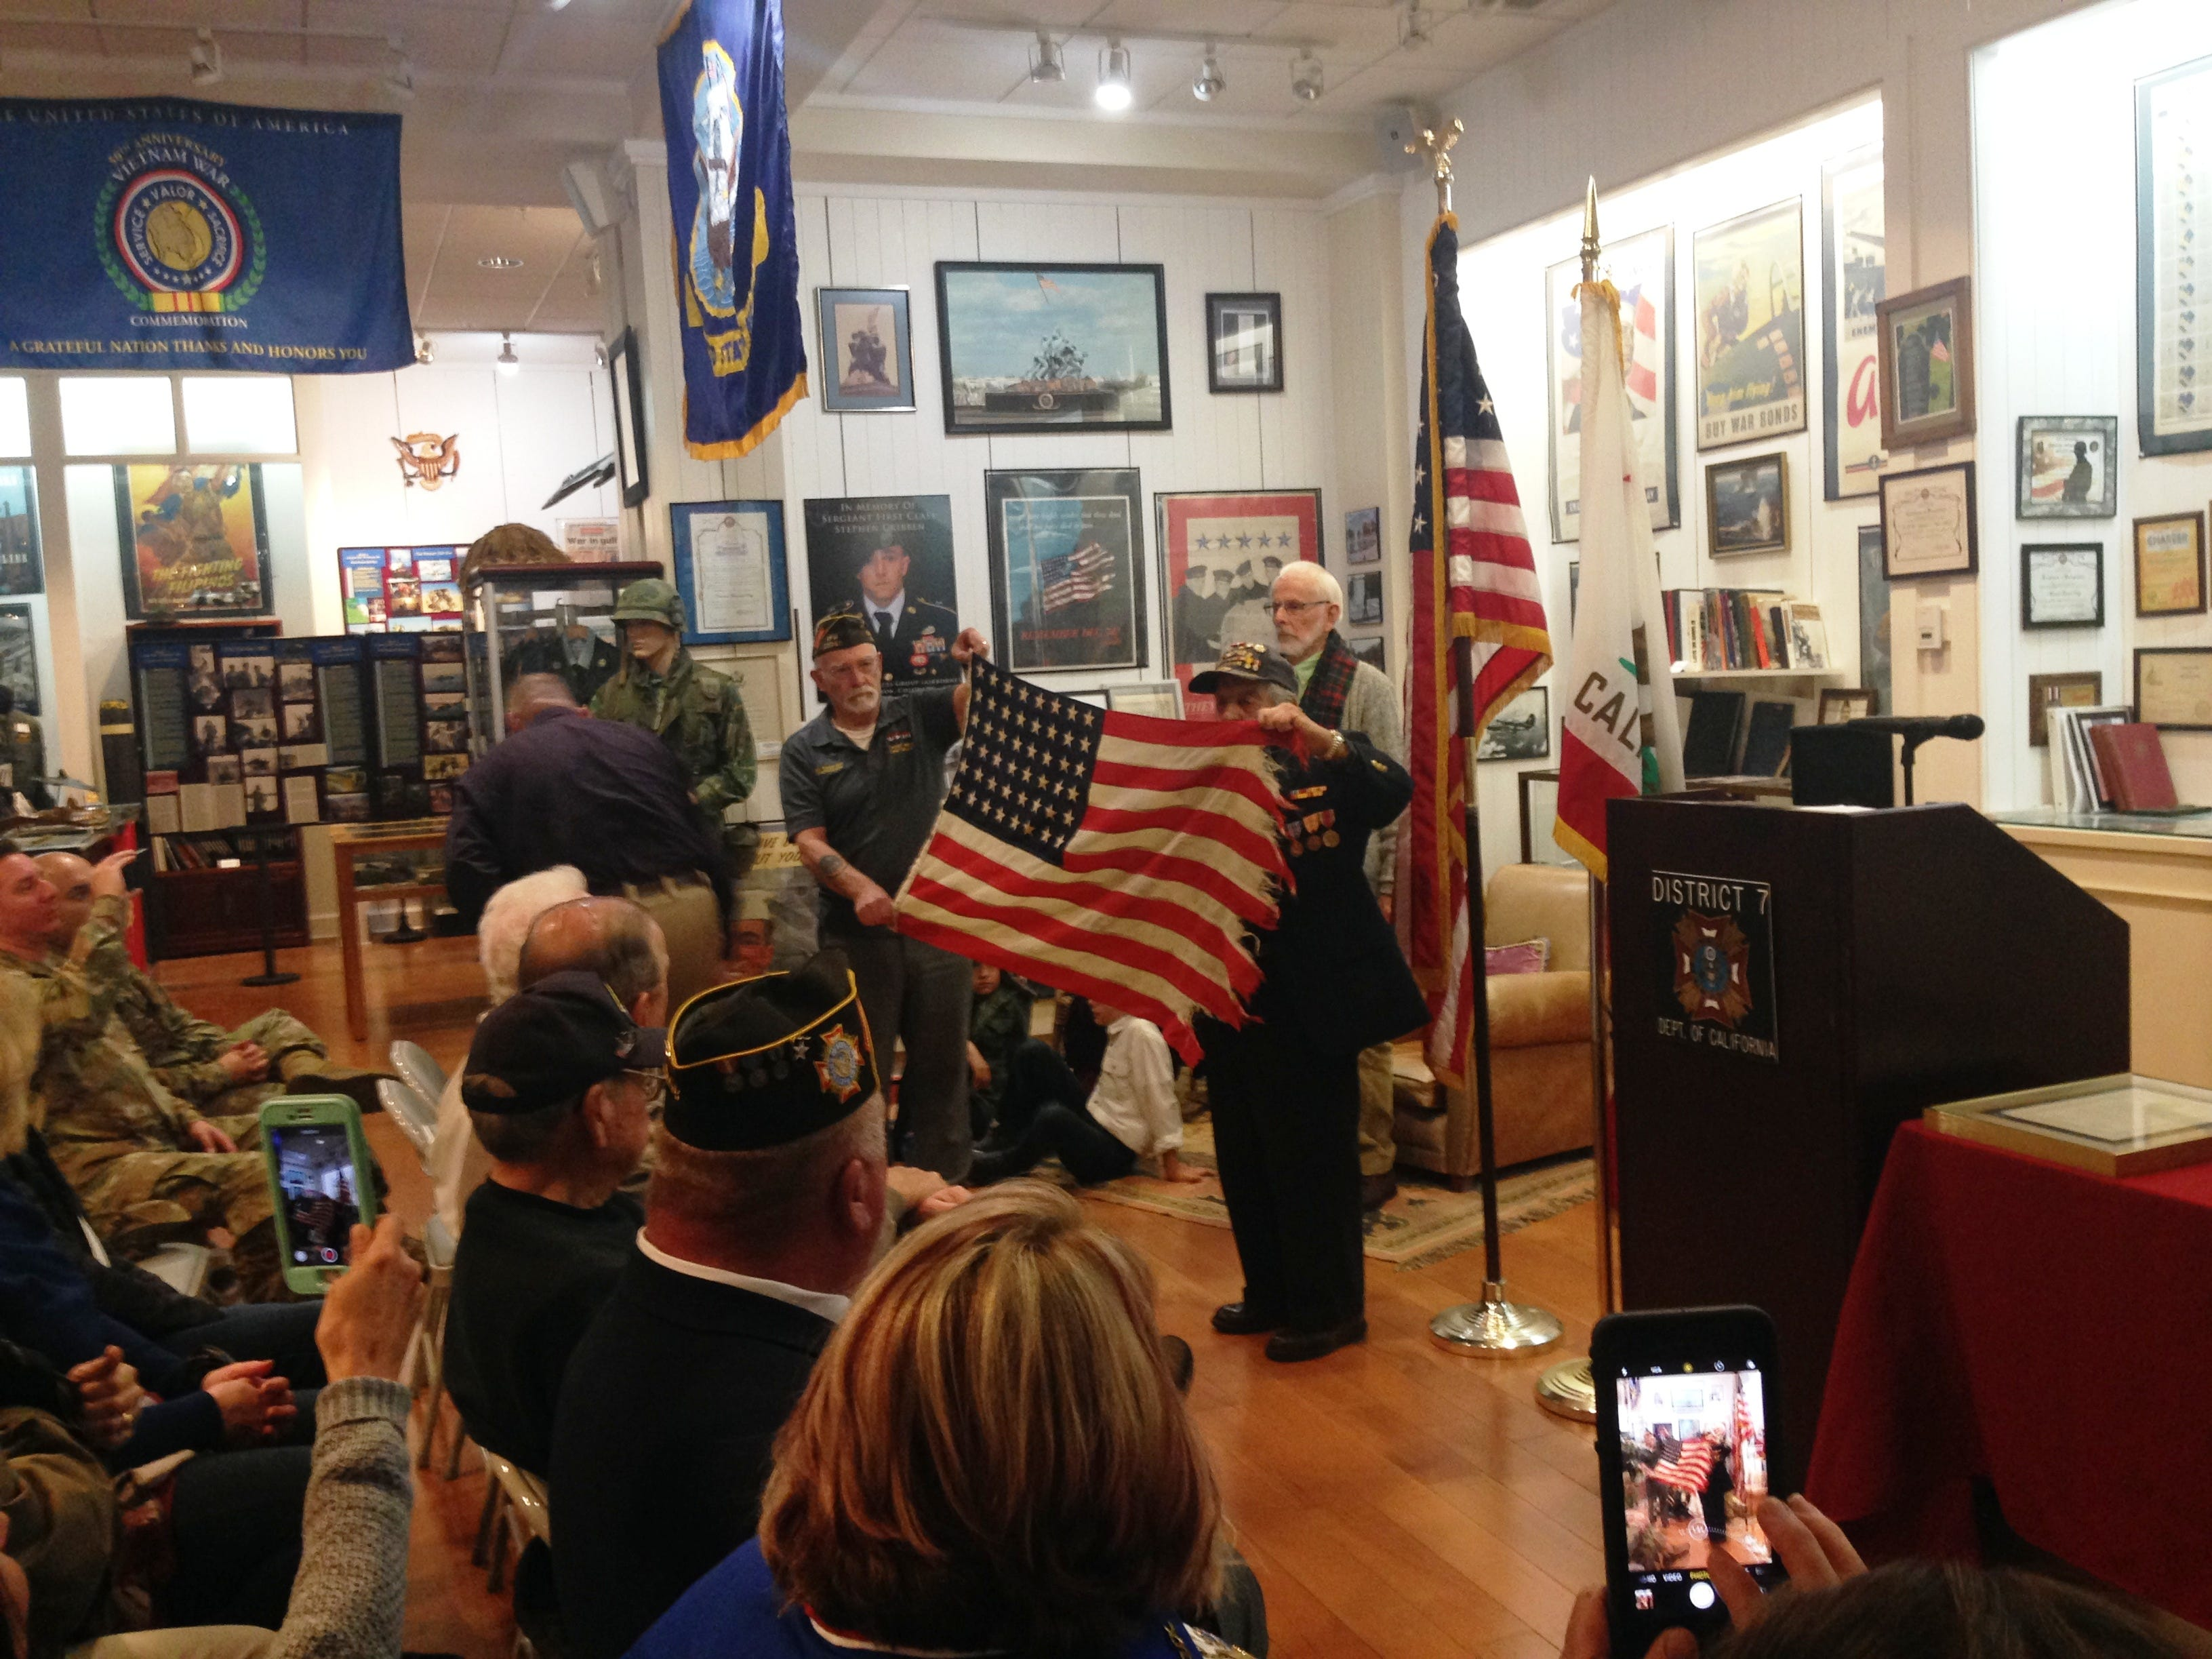 Barney P. Leone, a 94-year-old veteran of World War II who served aboard the USS Nemasket, shows the flag that was flying aboard his ship when he was in the Navy. Leone was a guest speaker at a commemoration of the 77th anniversary of the attack at Pearl Harbor, Hawaii. The event took place at the VFW Museum of Military History in Simi Valley on Dec. 7.